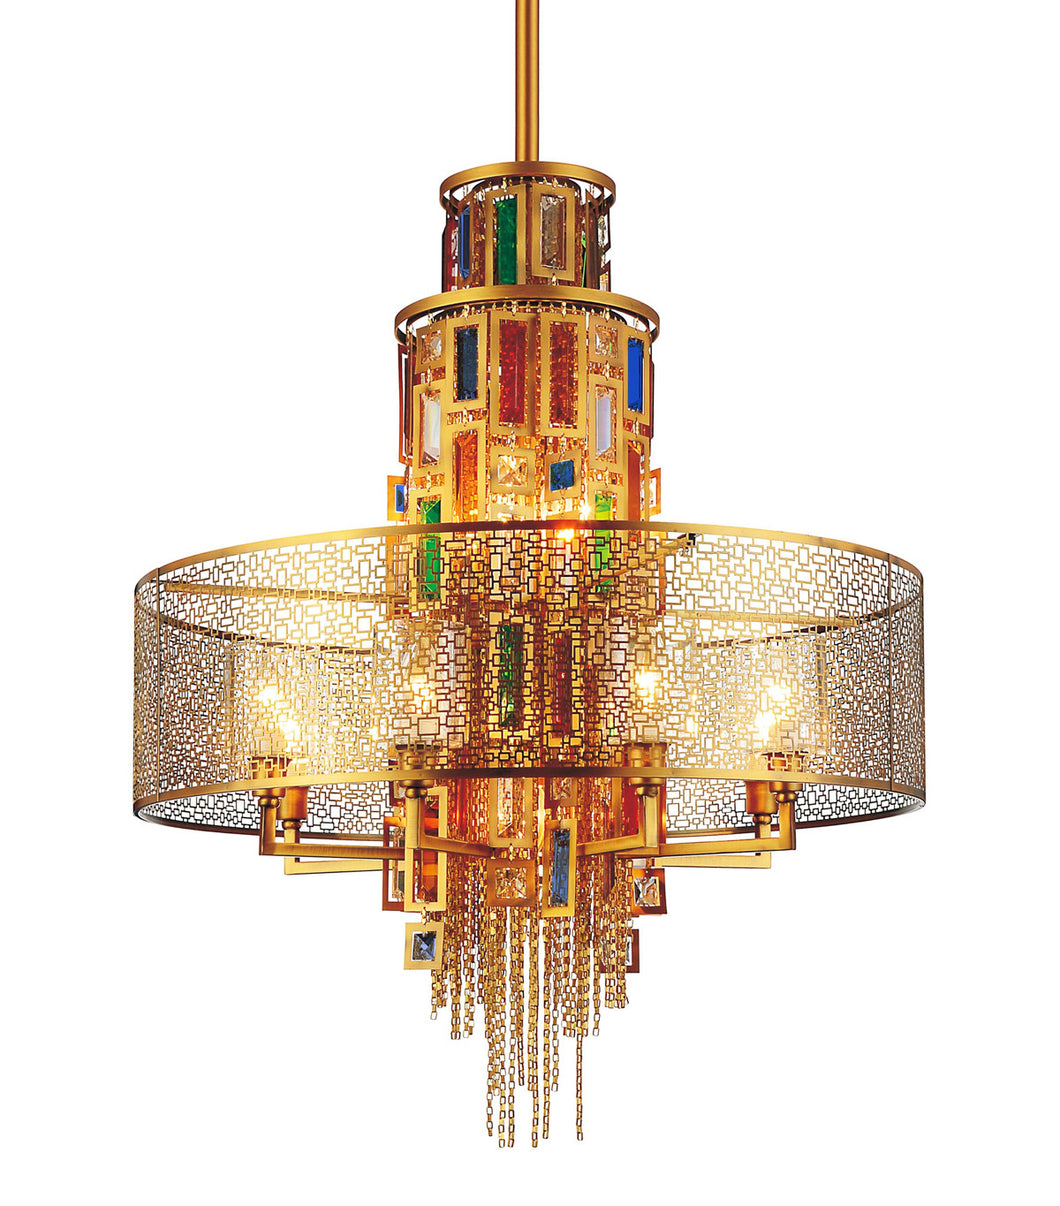 15 Light Drum Shade Chandelier with Gold finish